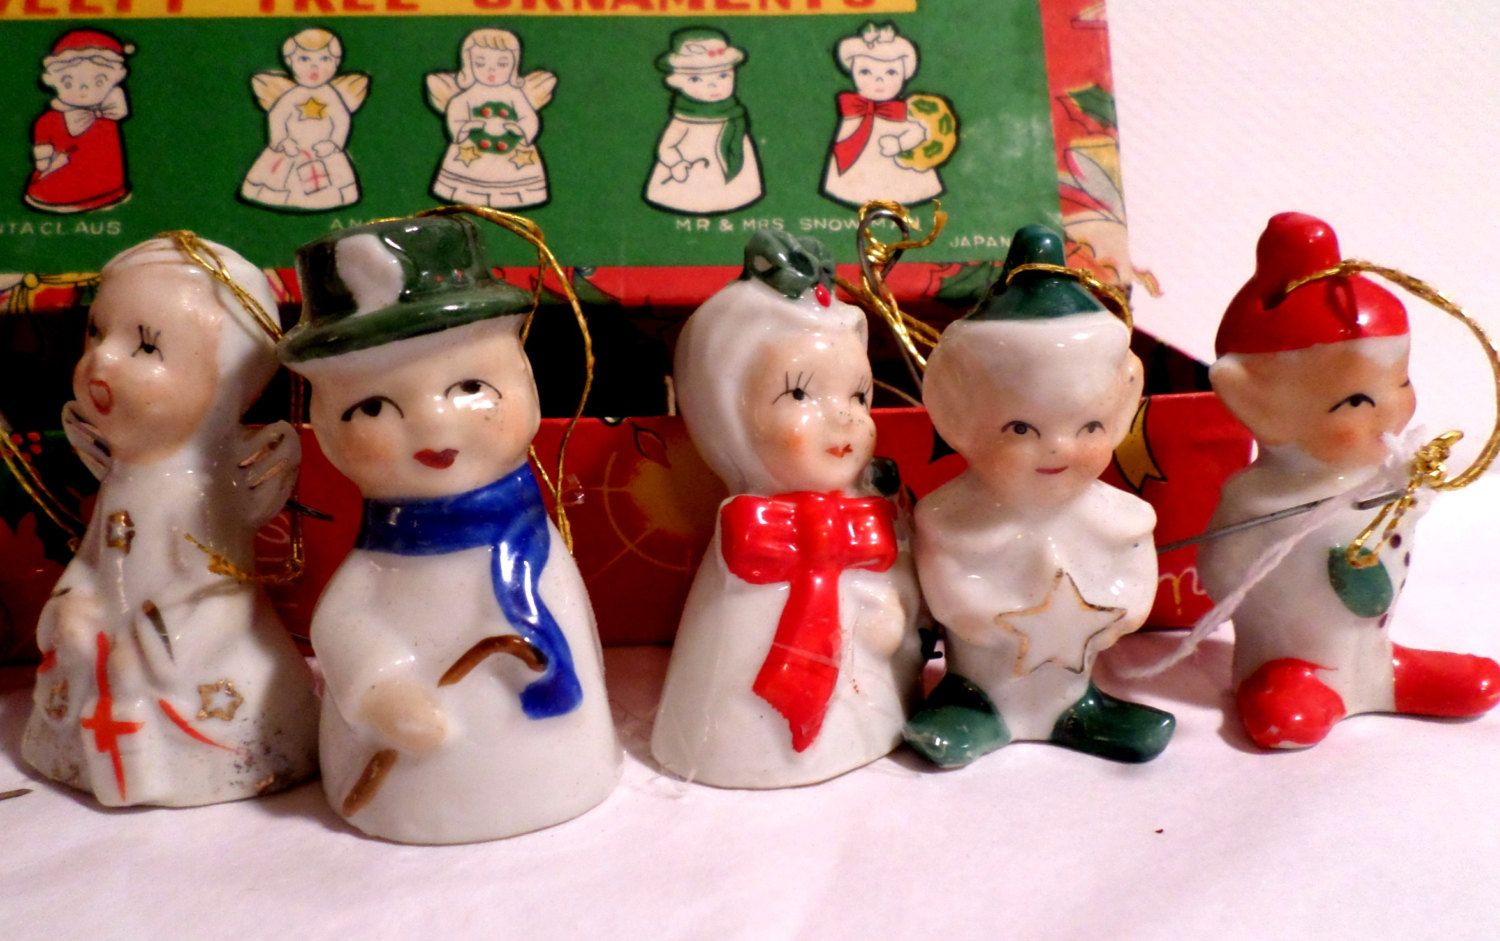 made in japan ceramic christmas bells set in original box santa christmas bells1950s christmaschristmas ornamentsvintage - Vintage Christmas Decorations 1950s